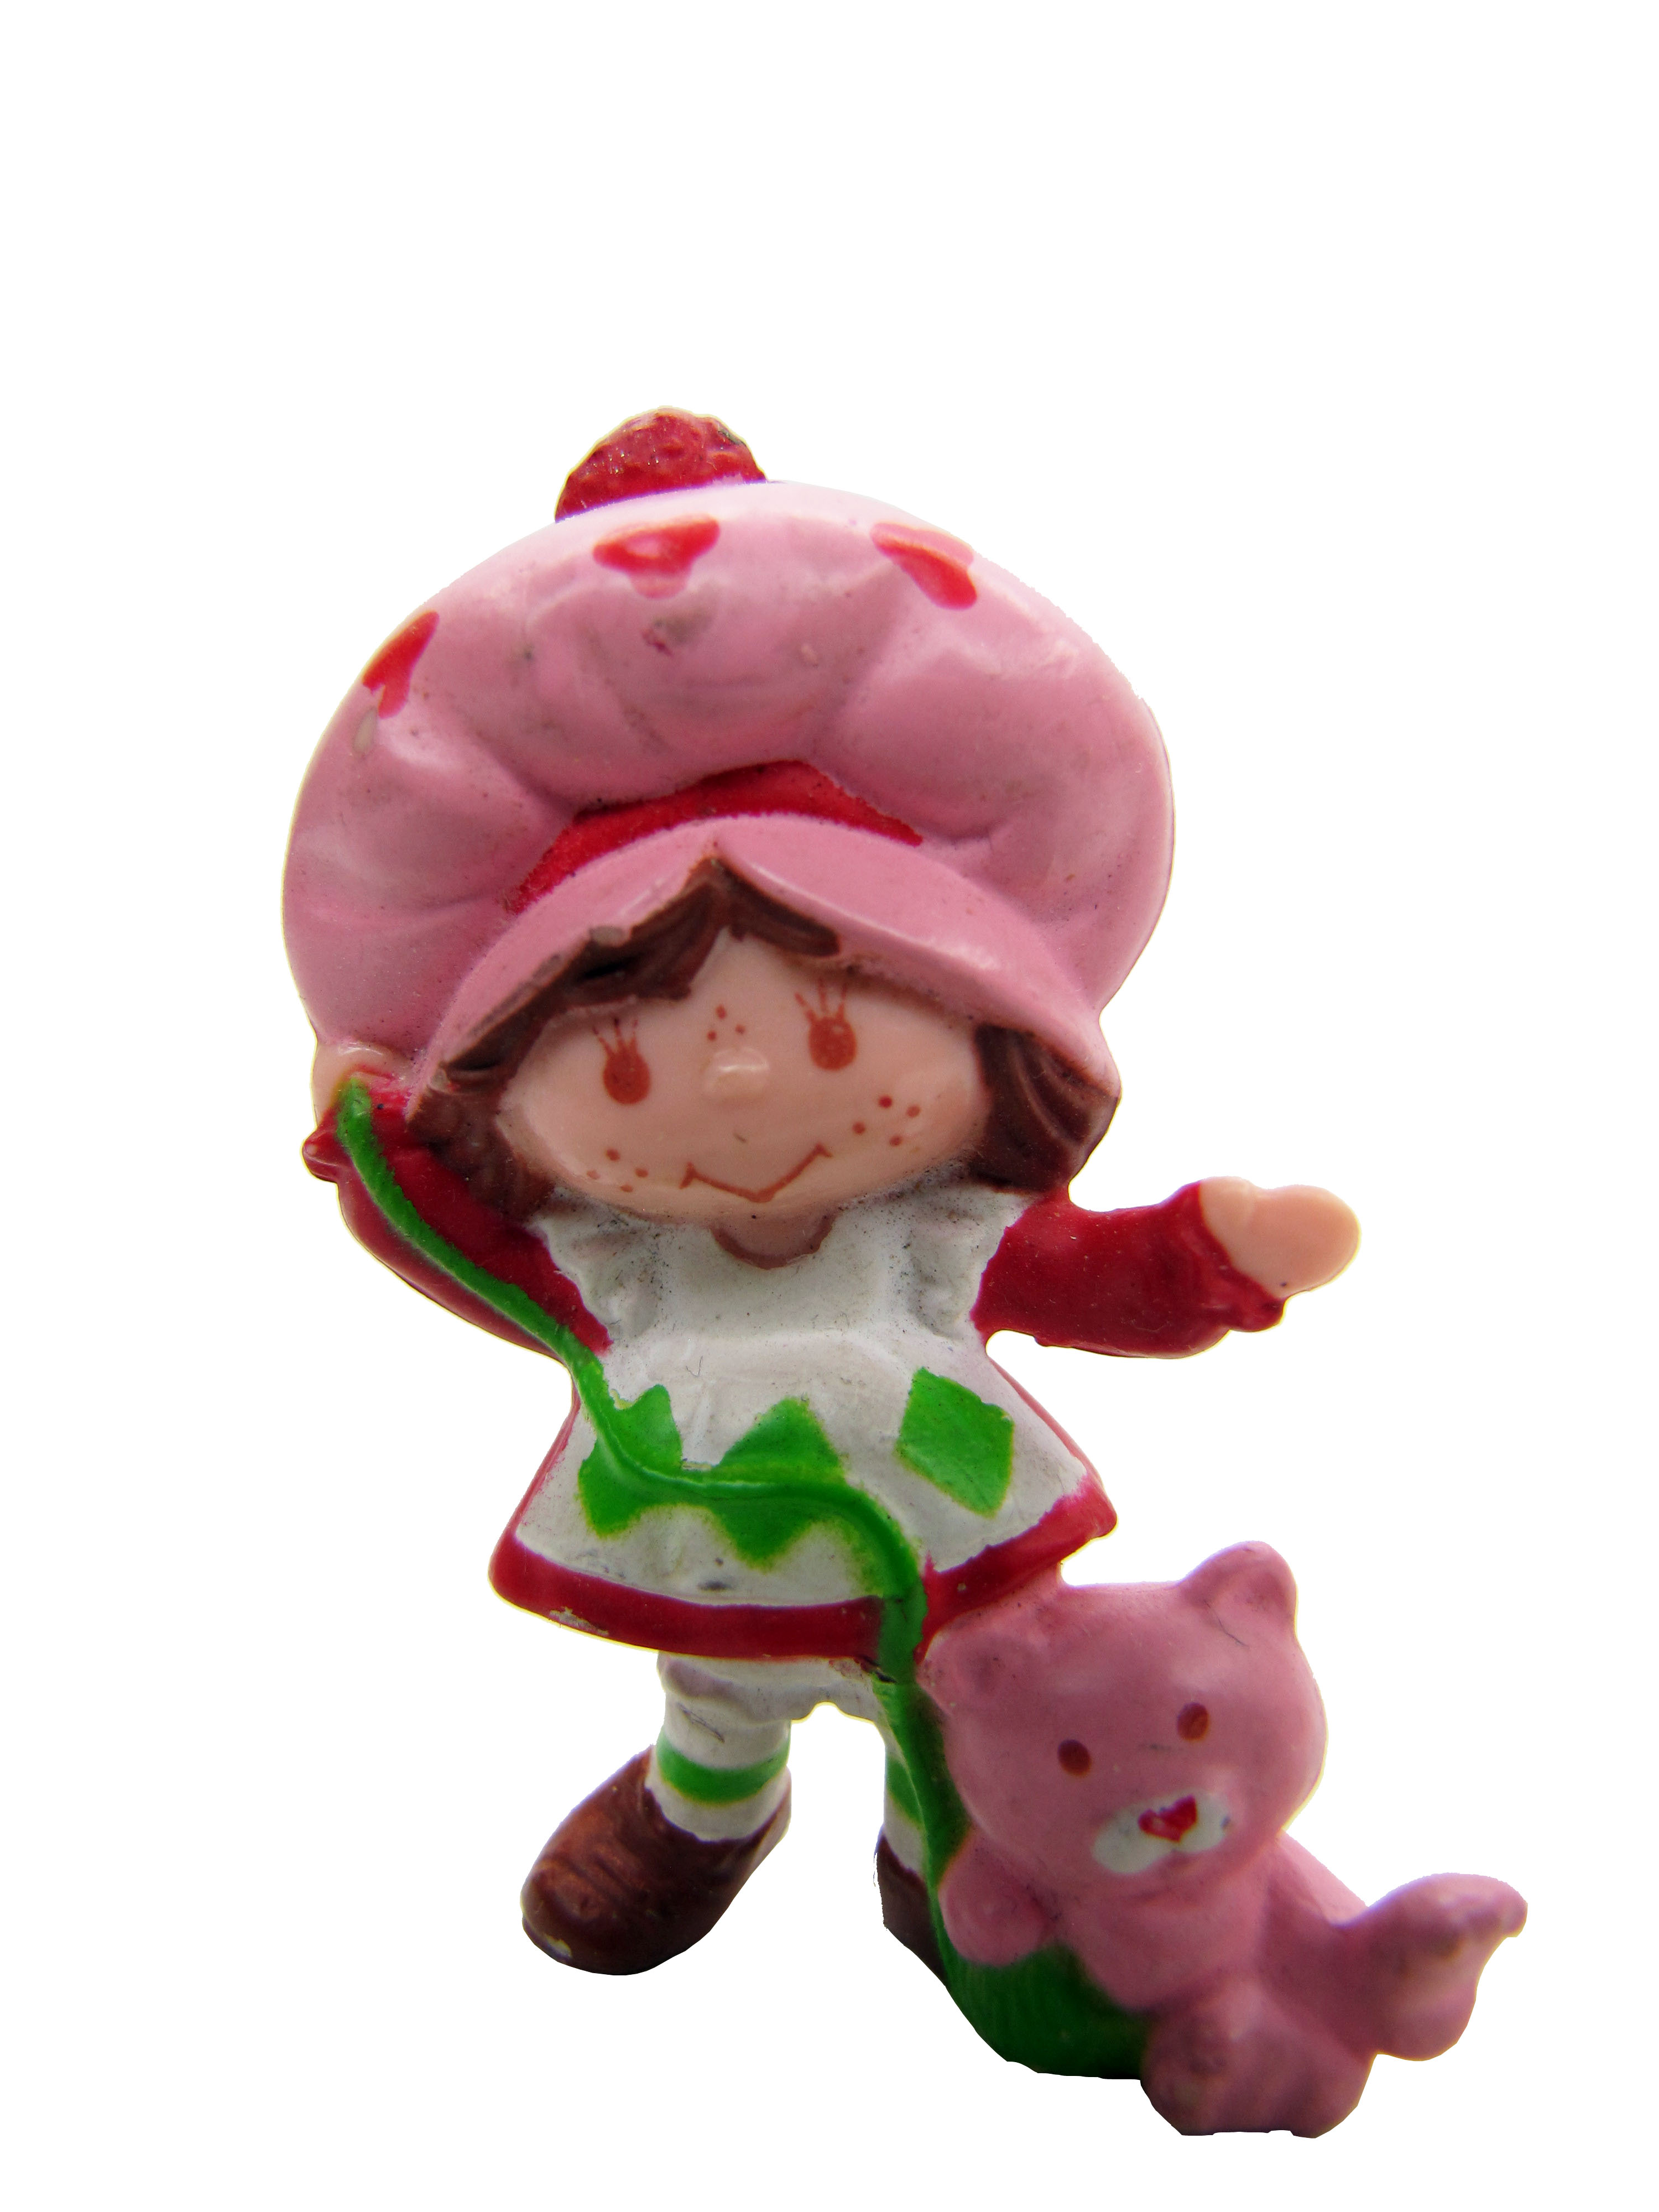 Vintage Strawberry Shortcake Playing with Custard